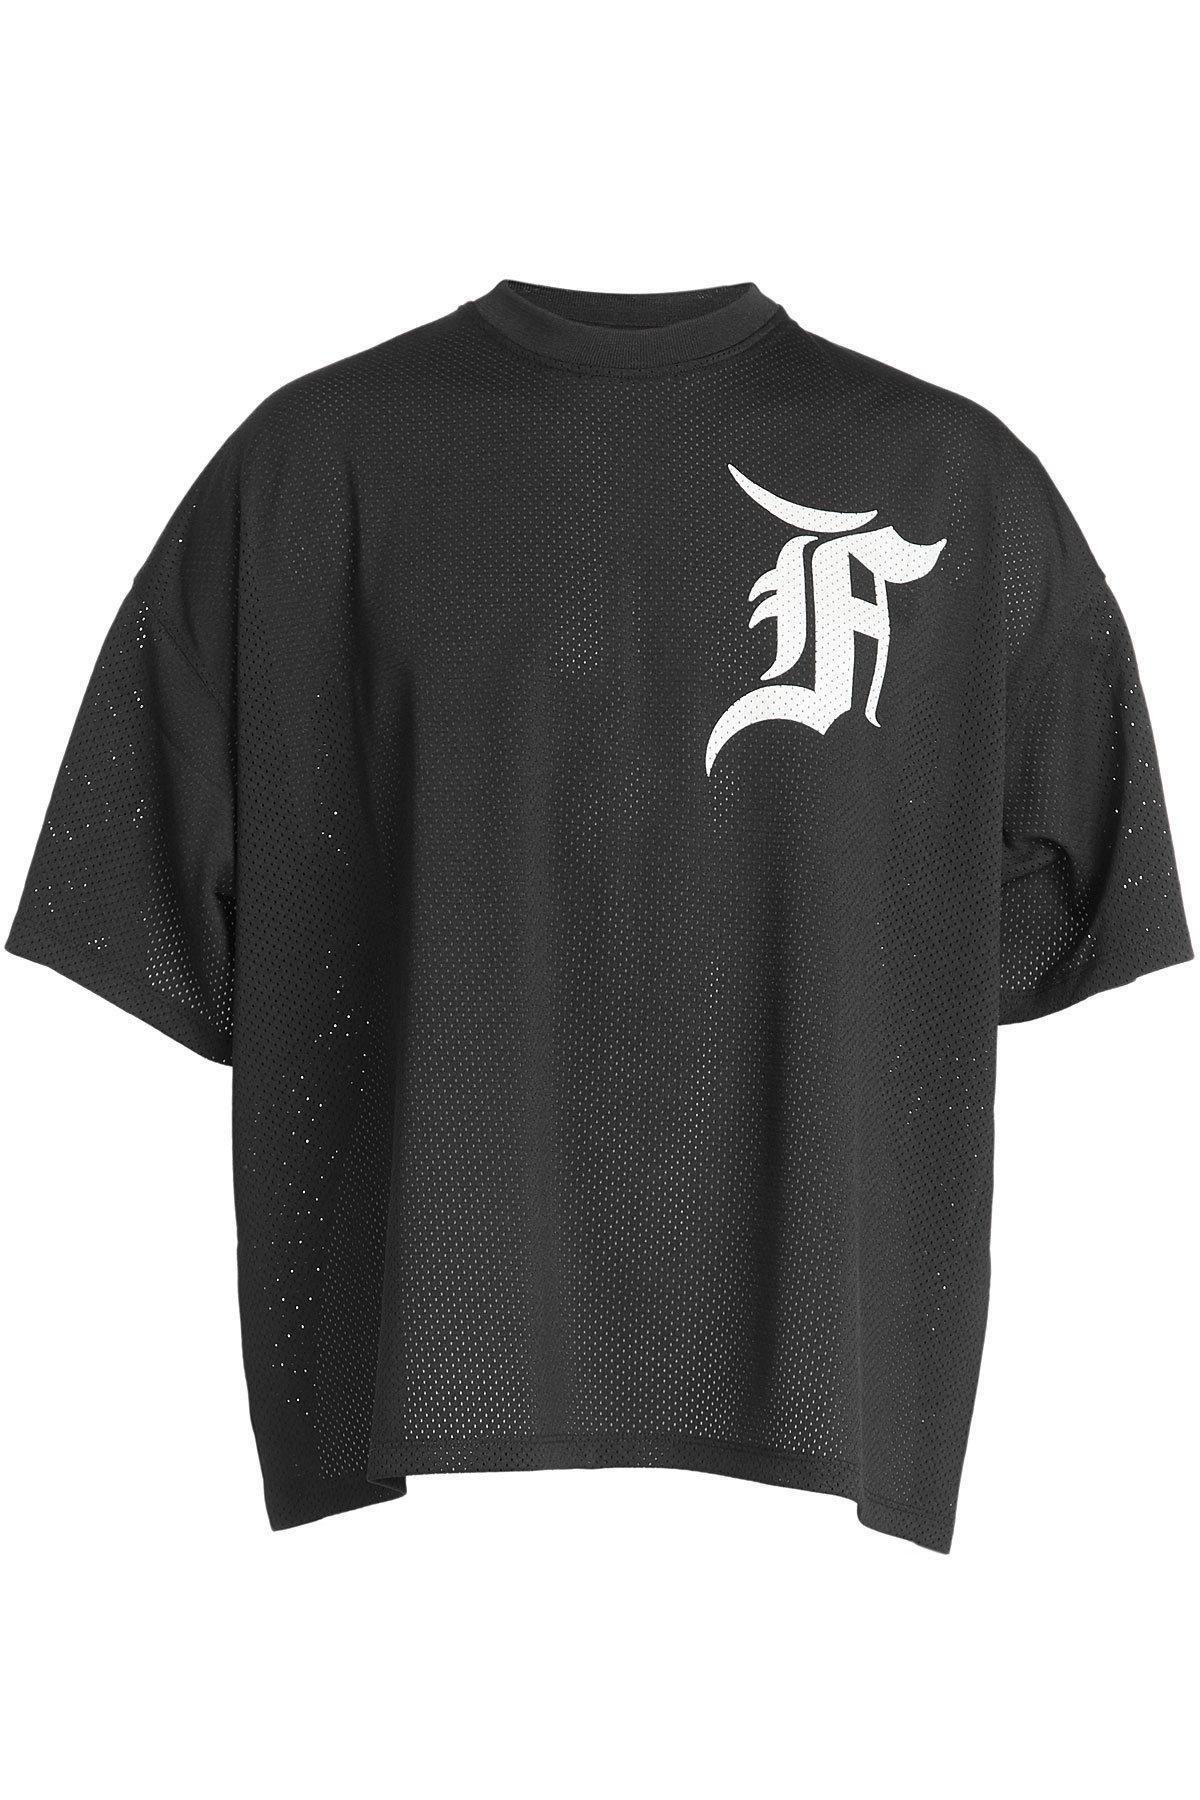 Fear Of God Printed Mesh T-Shirt In Black